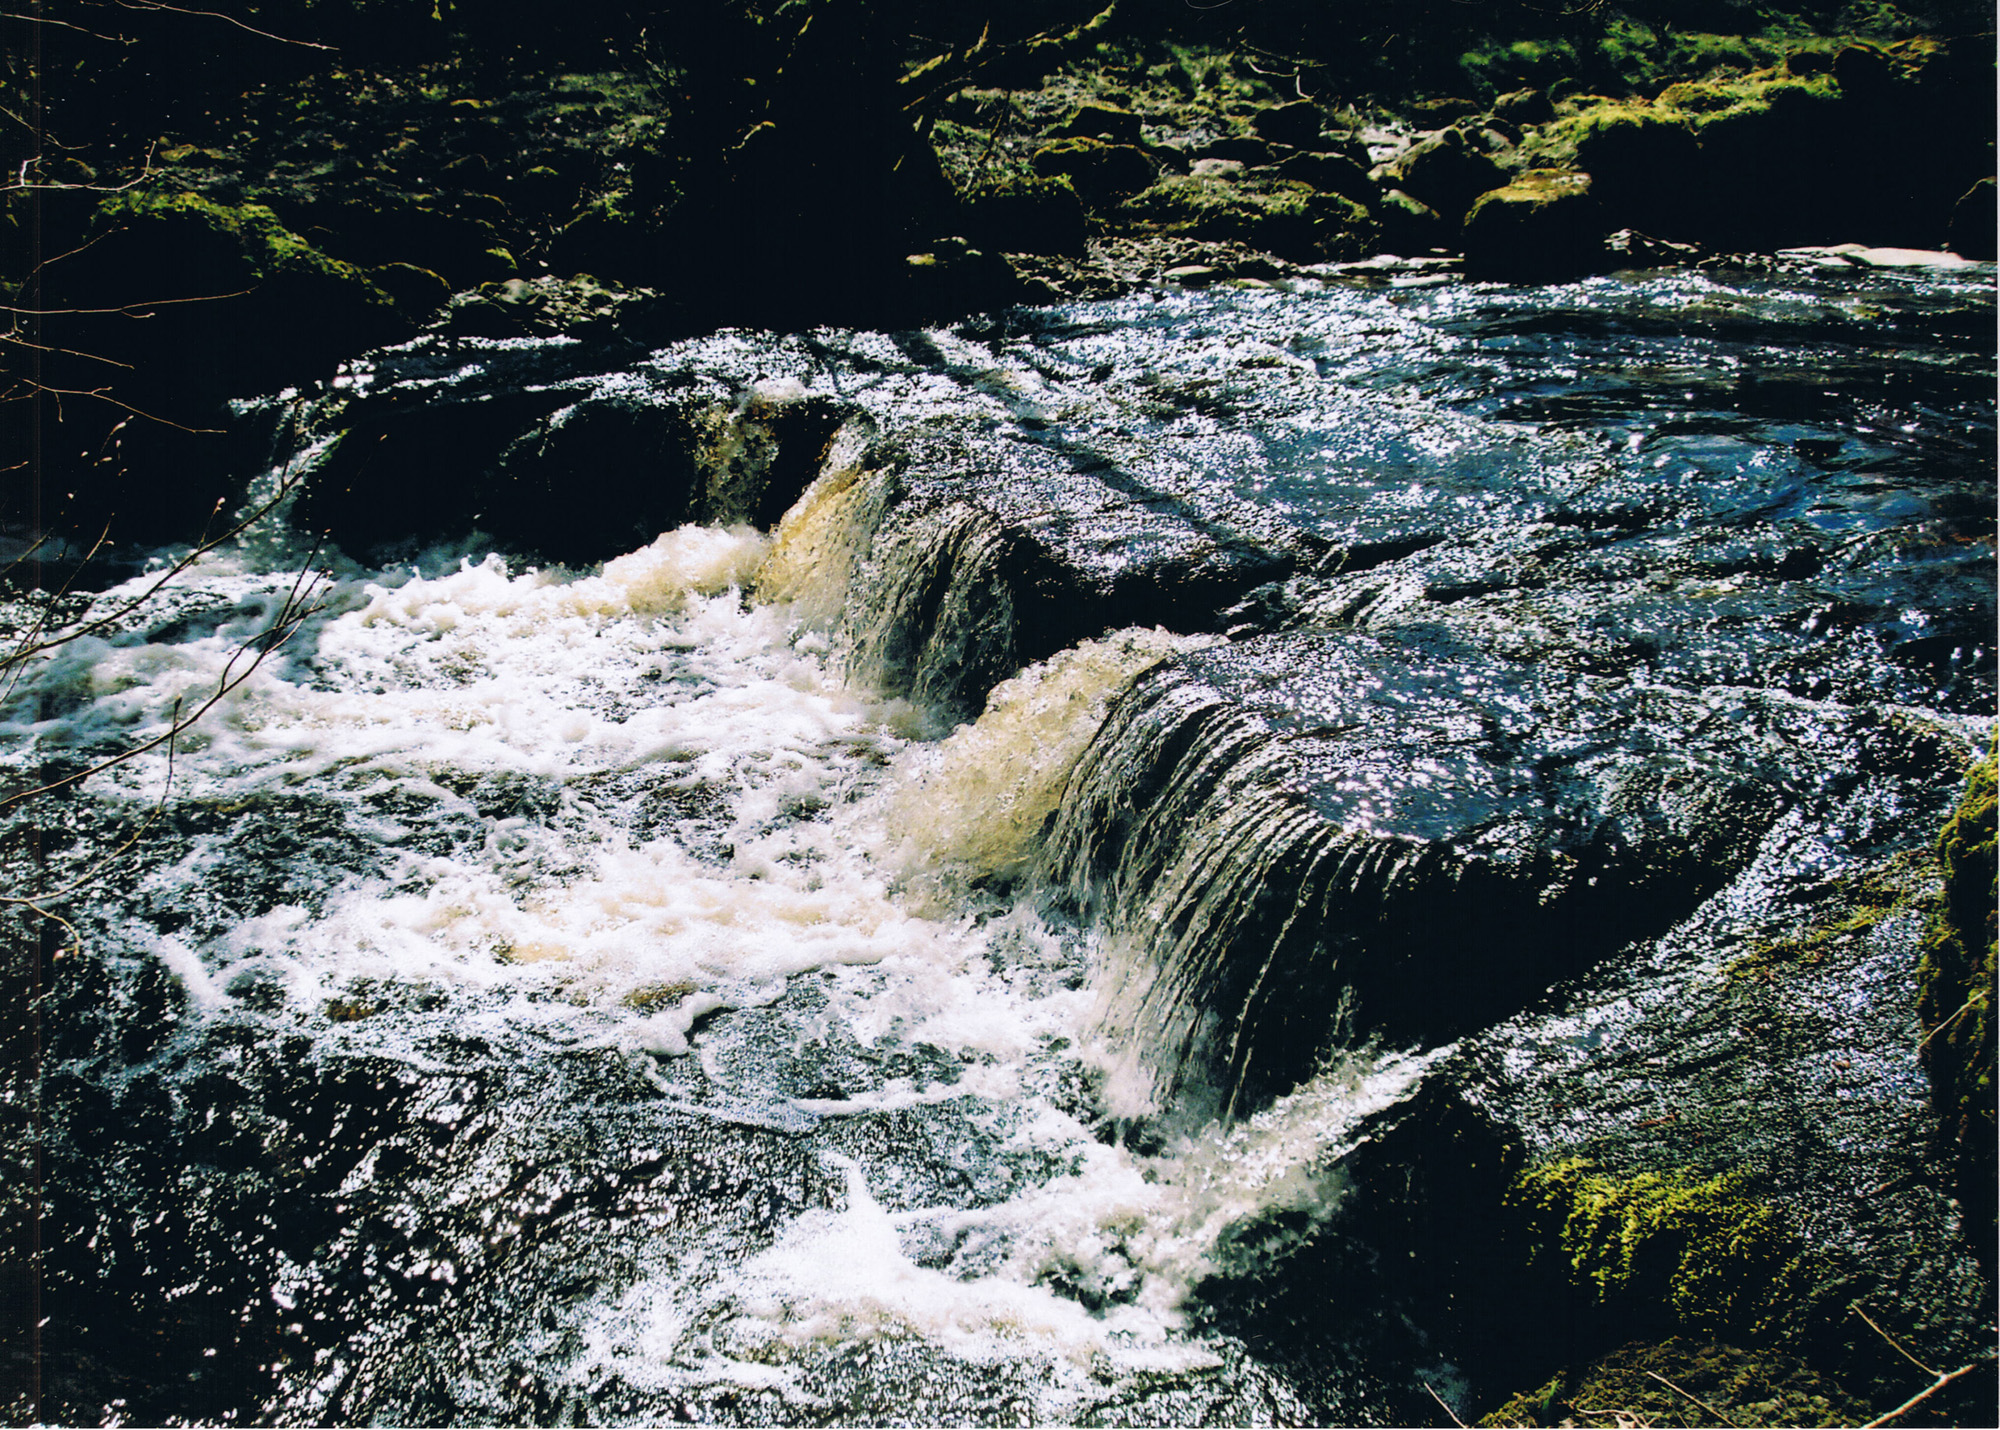 Norby waterfall